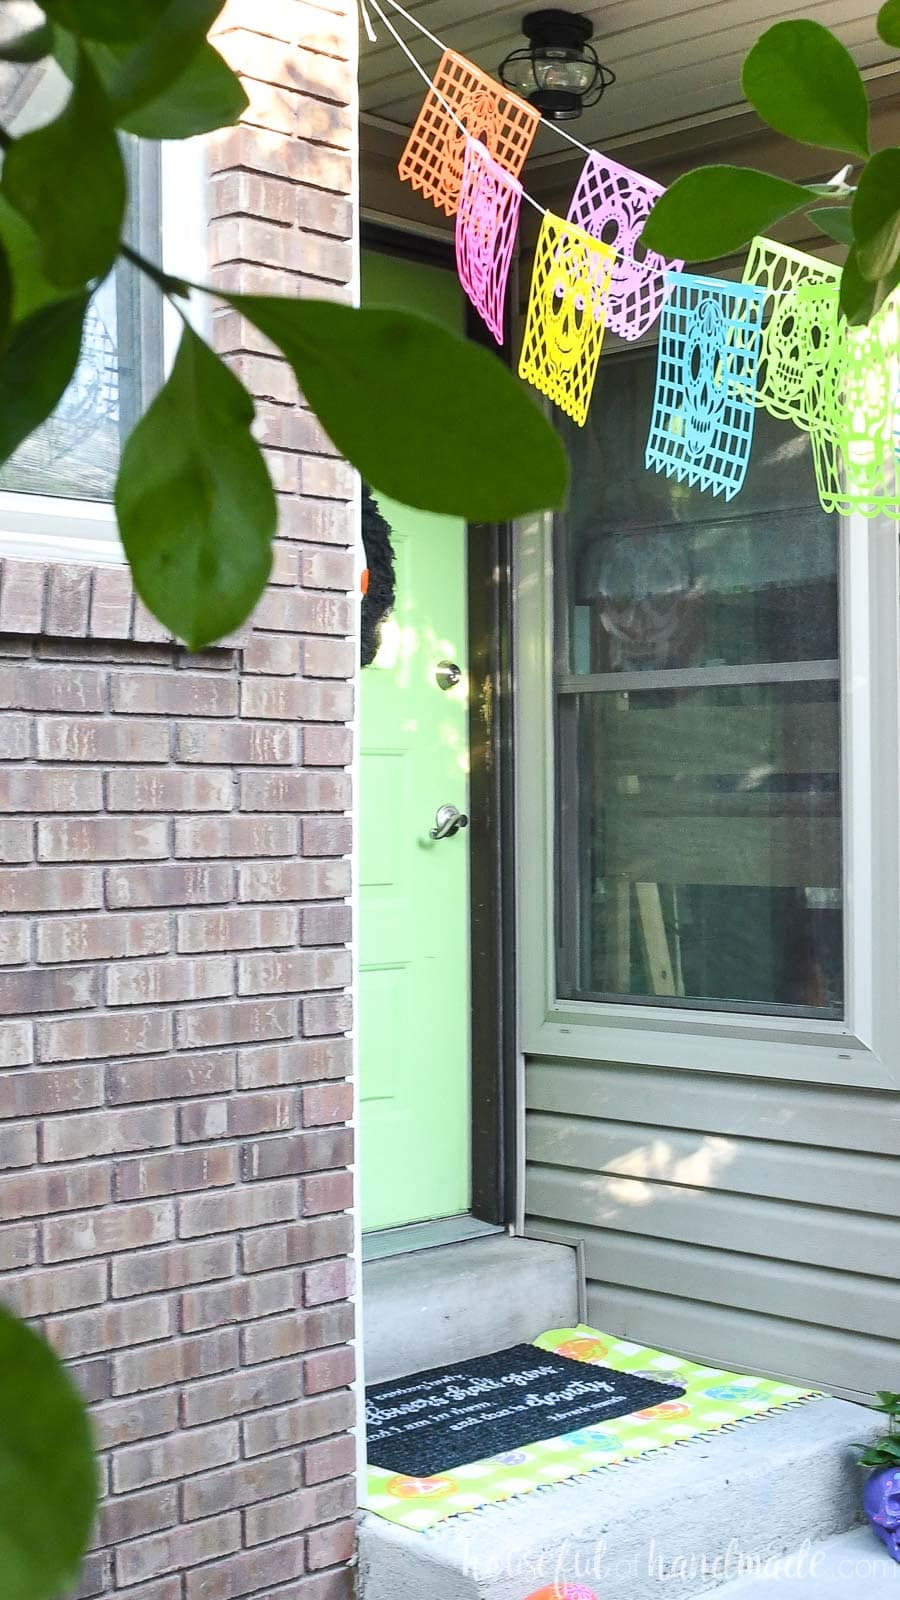 Small porch with bight green door and Day of the Dead layered doormat on it.